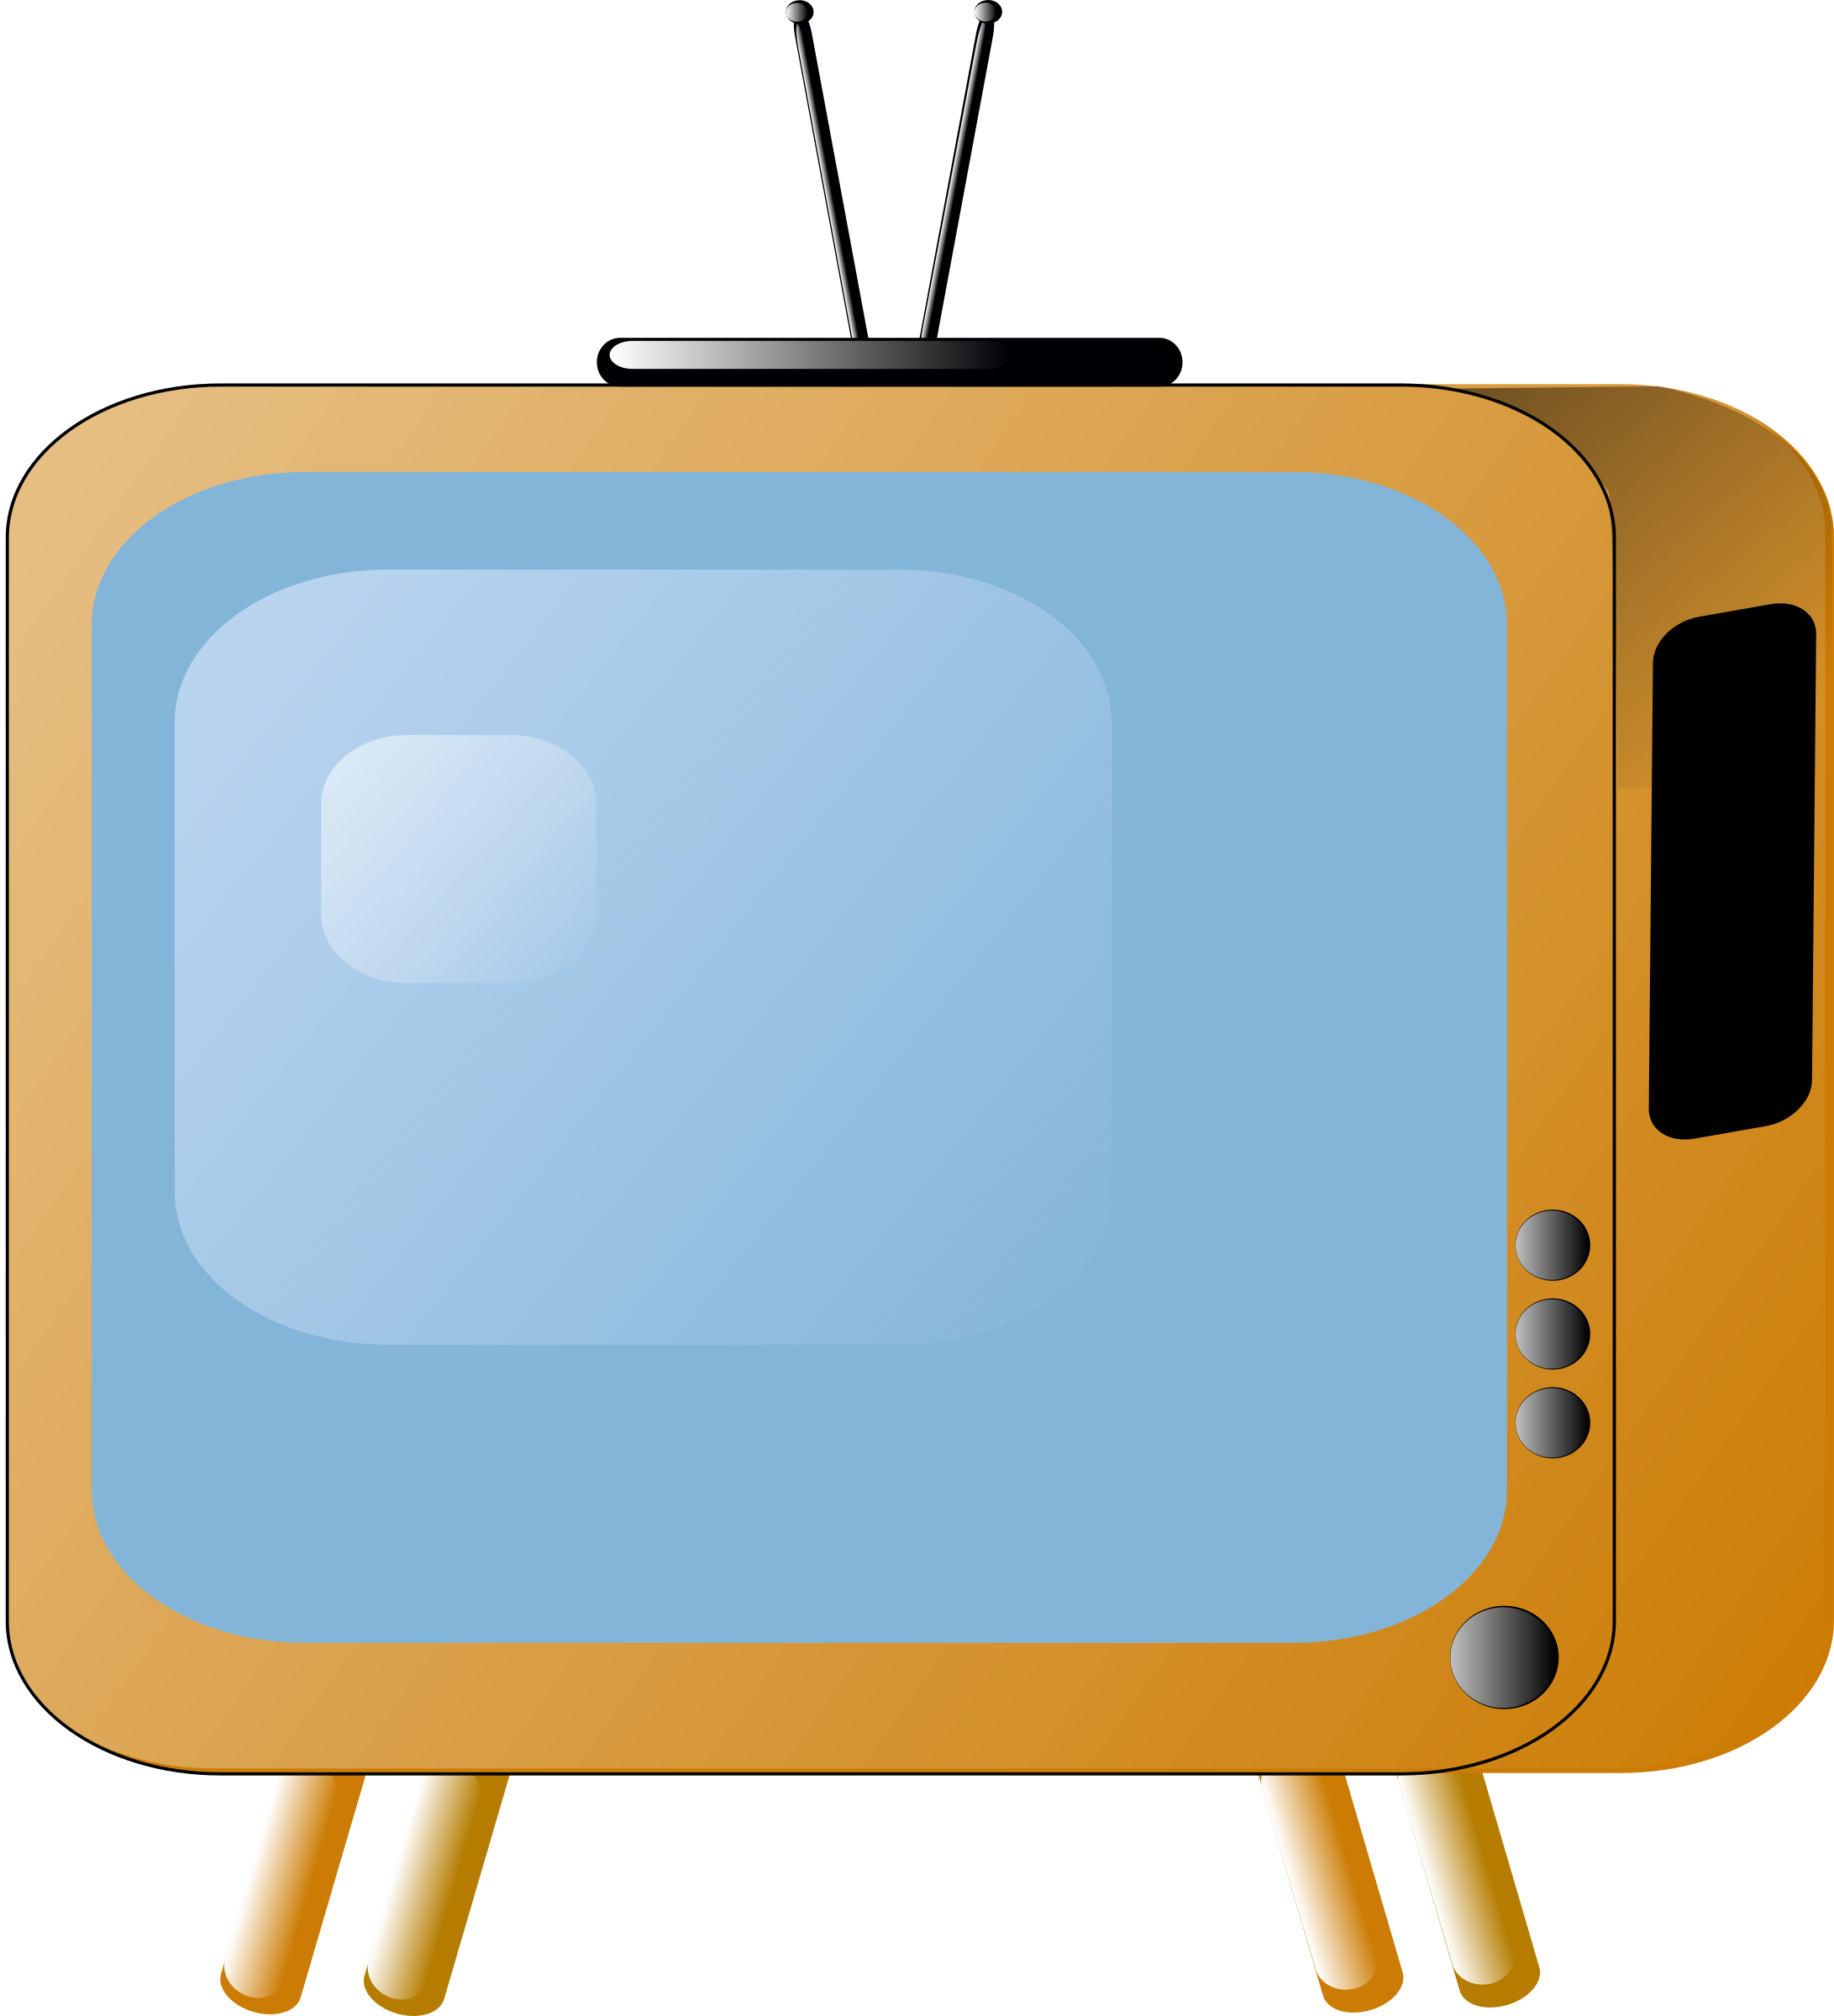 Television clipart animated. Old styled tv set